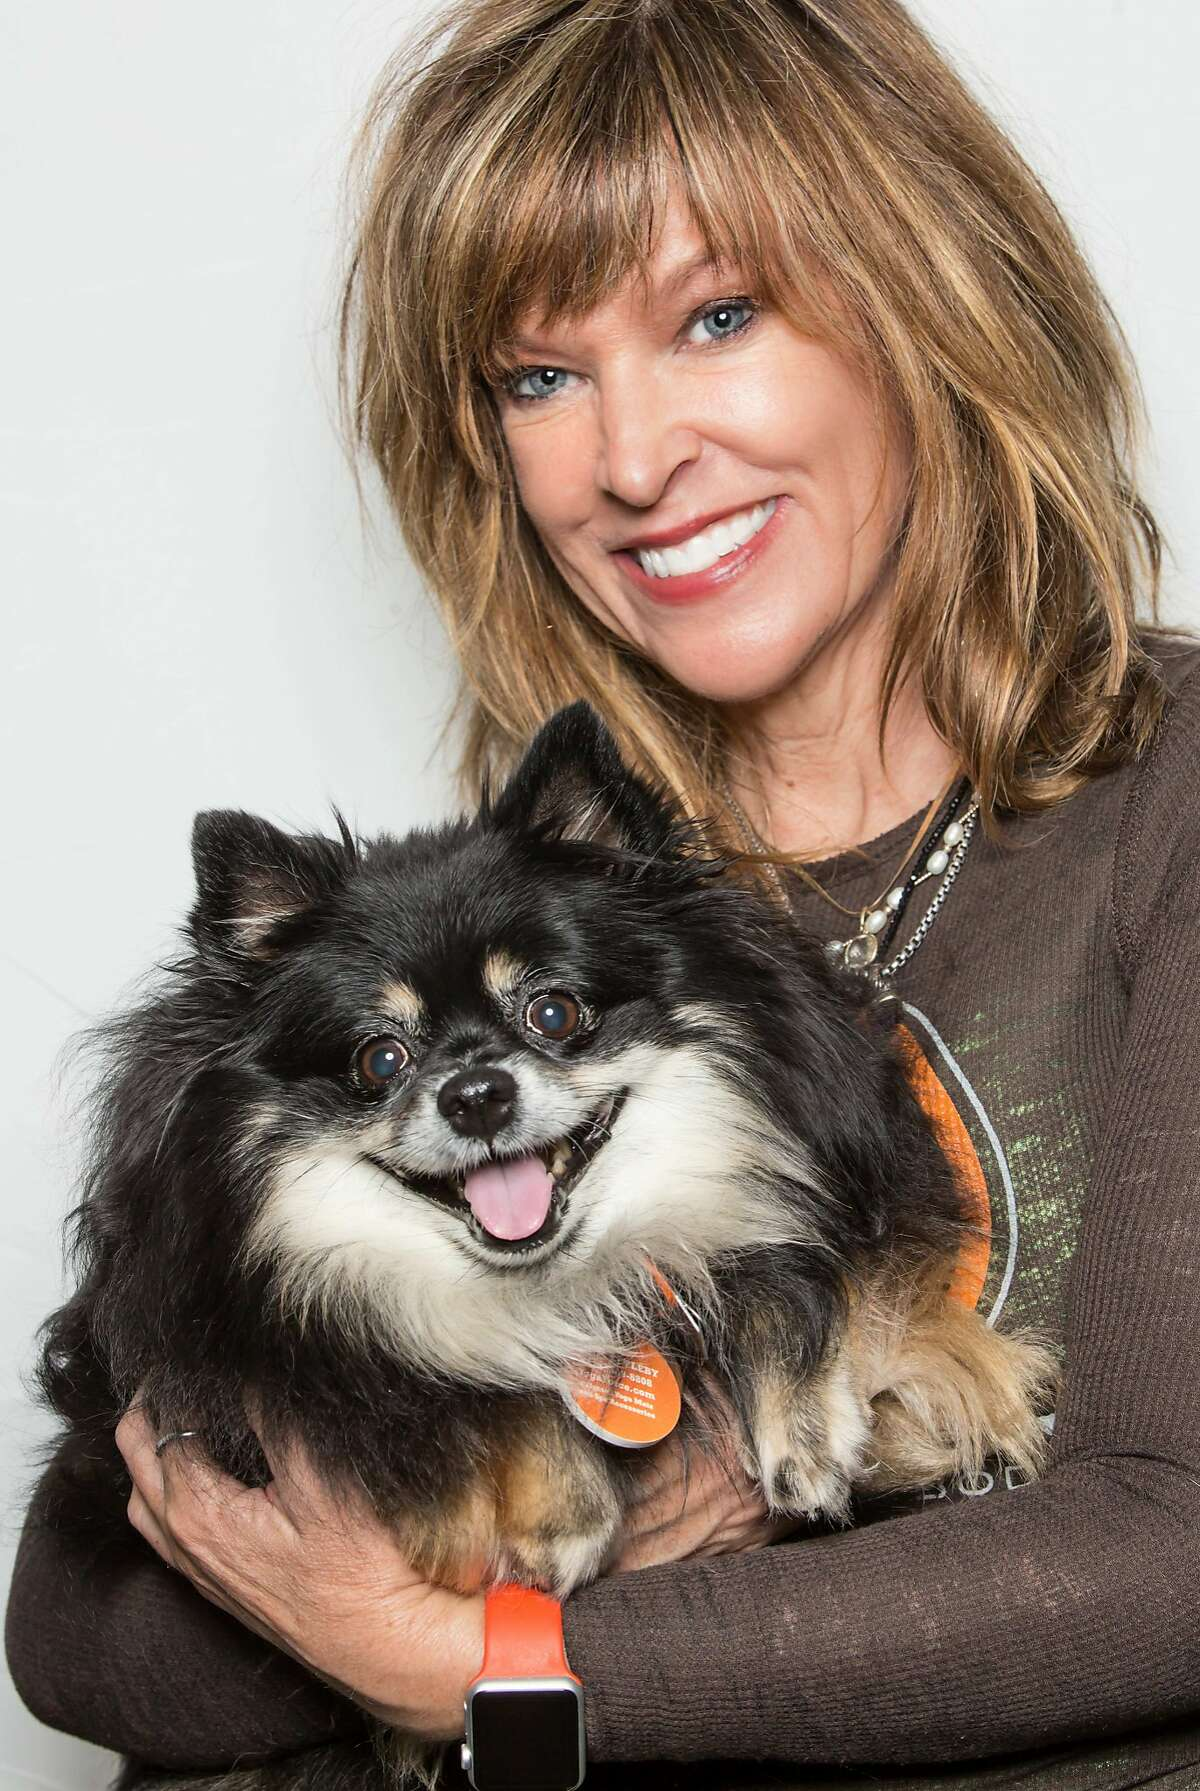 """Anne Appleby, founder of YogaForce, will be teaching """"doga"""" (dog yoga) May 18 at Wilkes Bashford Palo Alto. The event benefits the Peninsula Humane Society and the SPCA."""